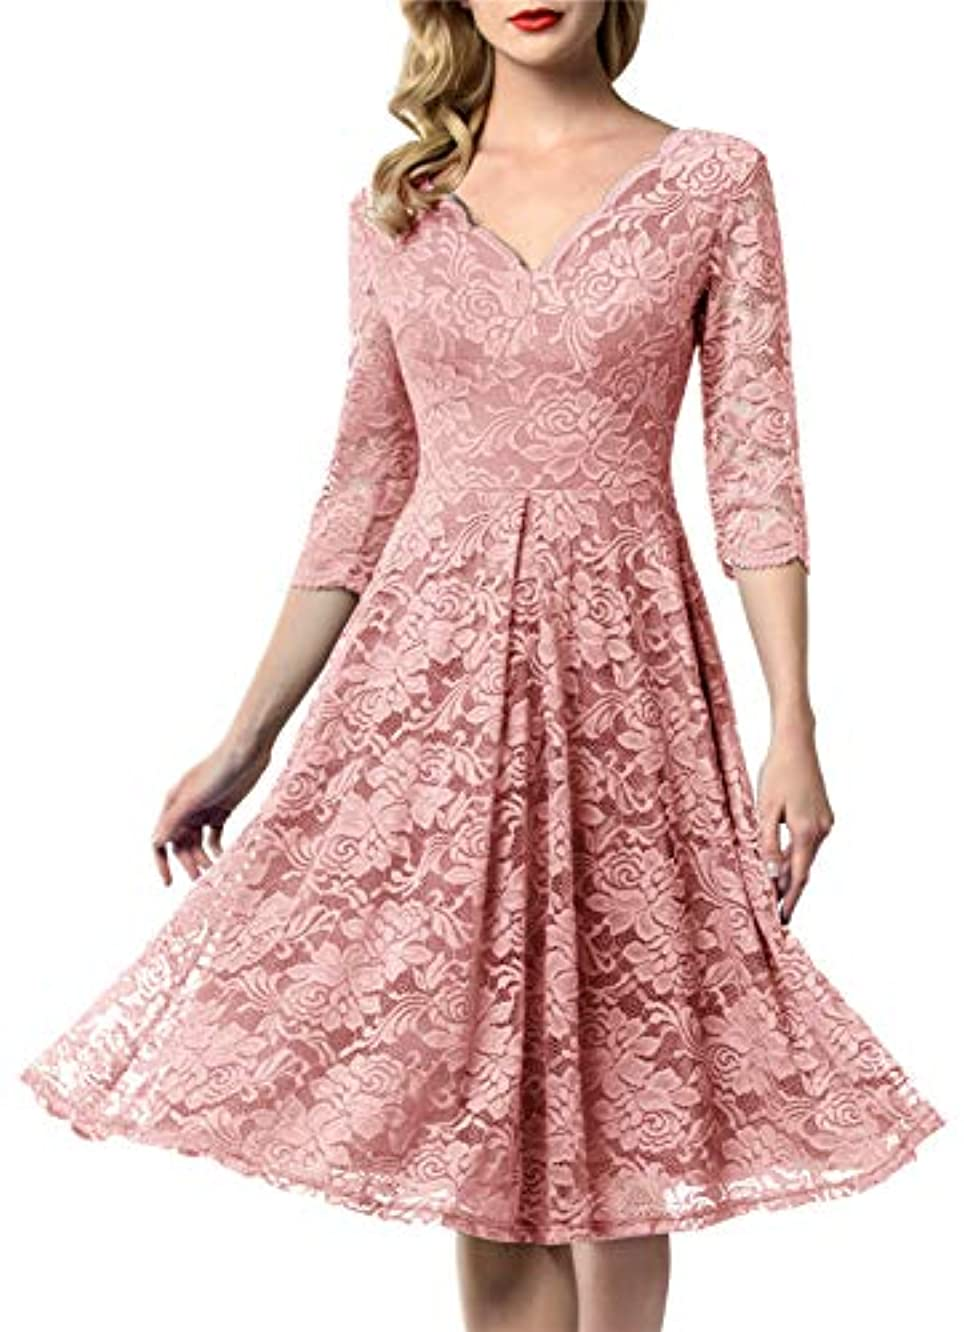 AONOUR Women's Vintage Floral Lace Bridesmaid Dress 3/4 Sleeve Wedding Party Midi Dress